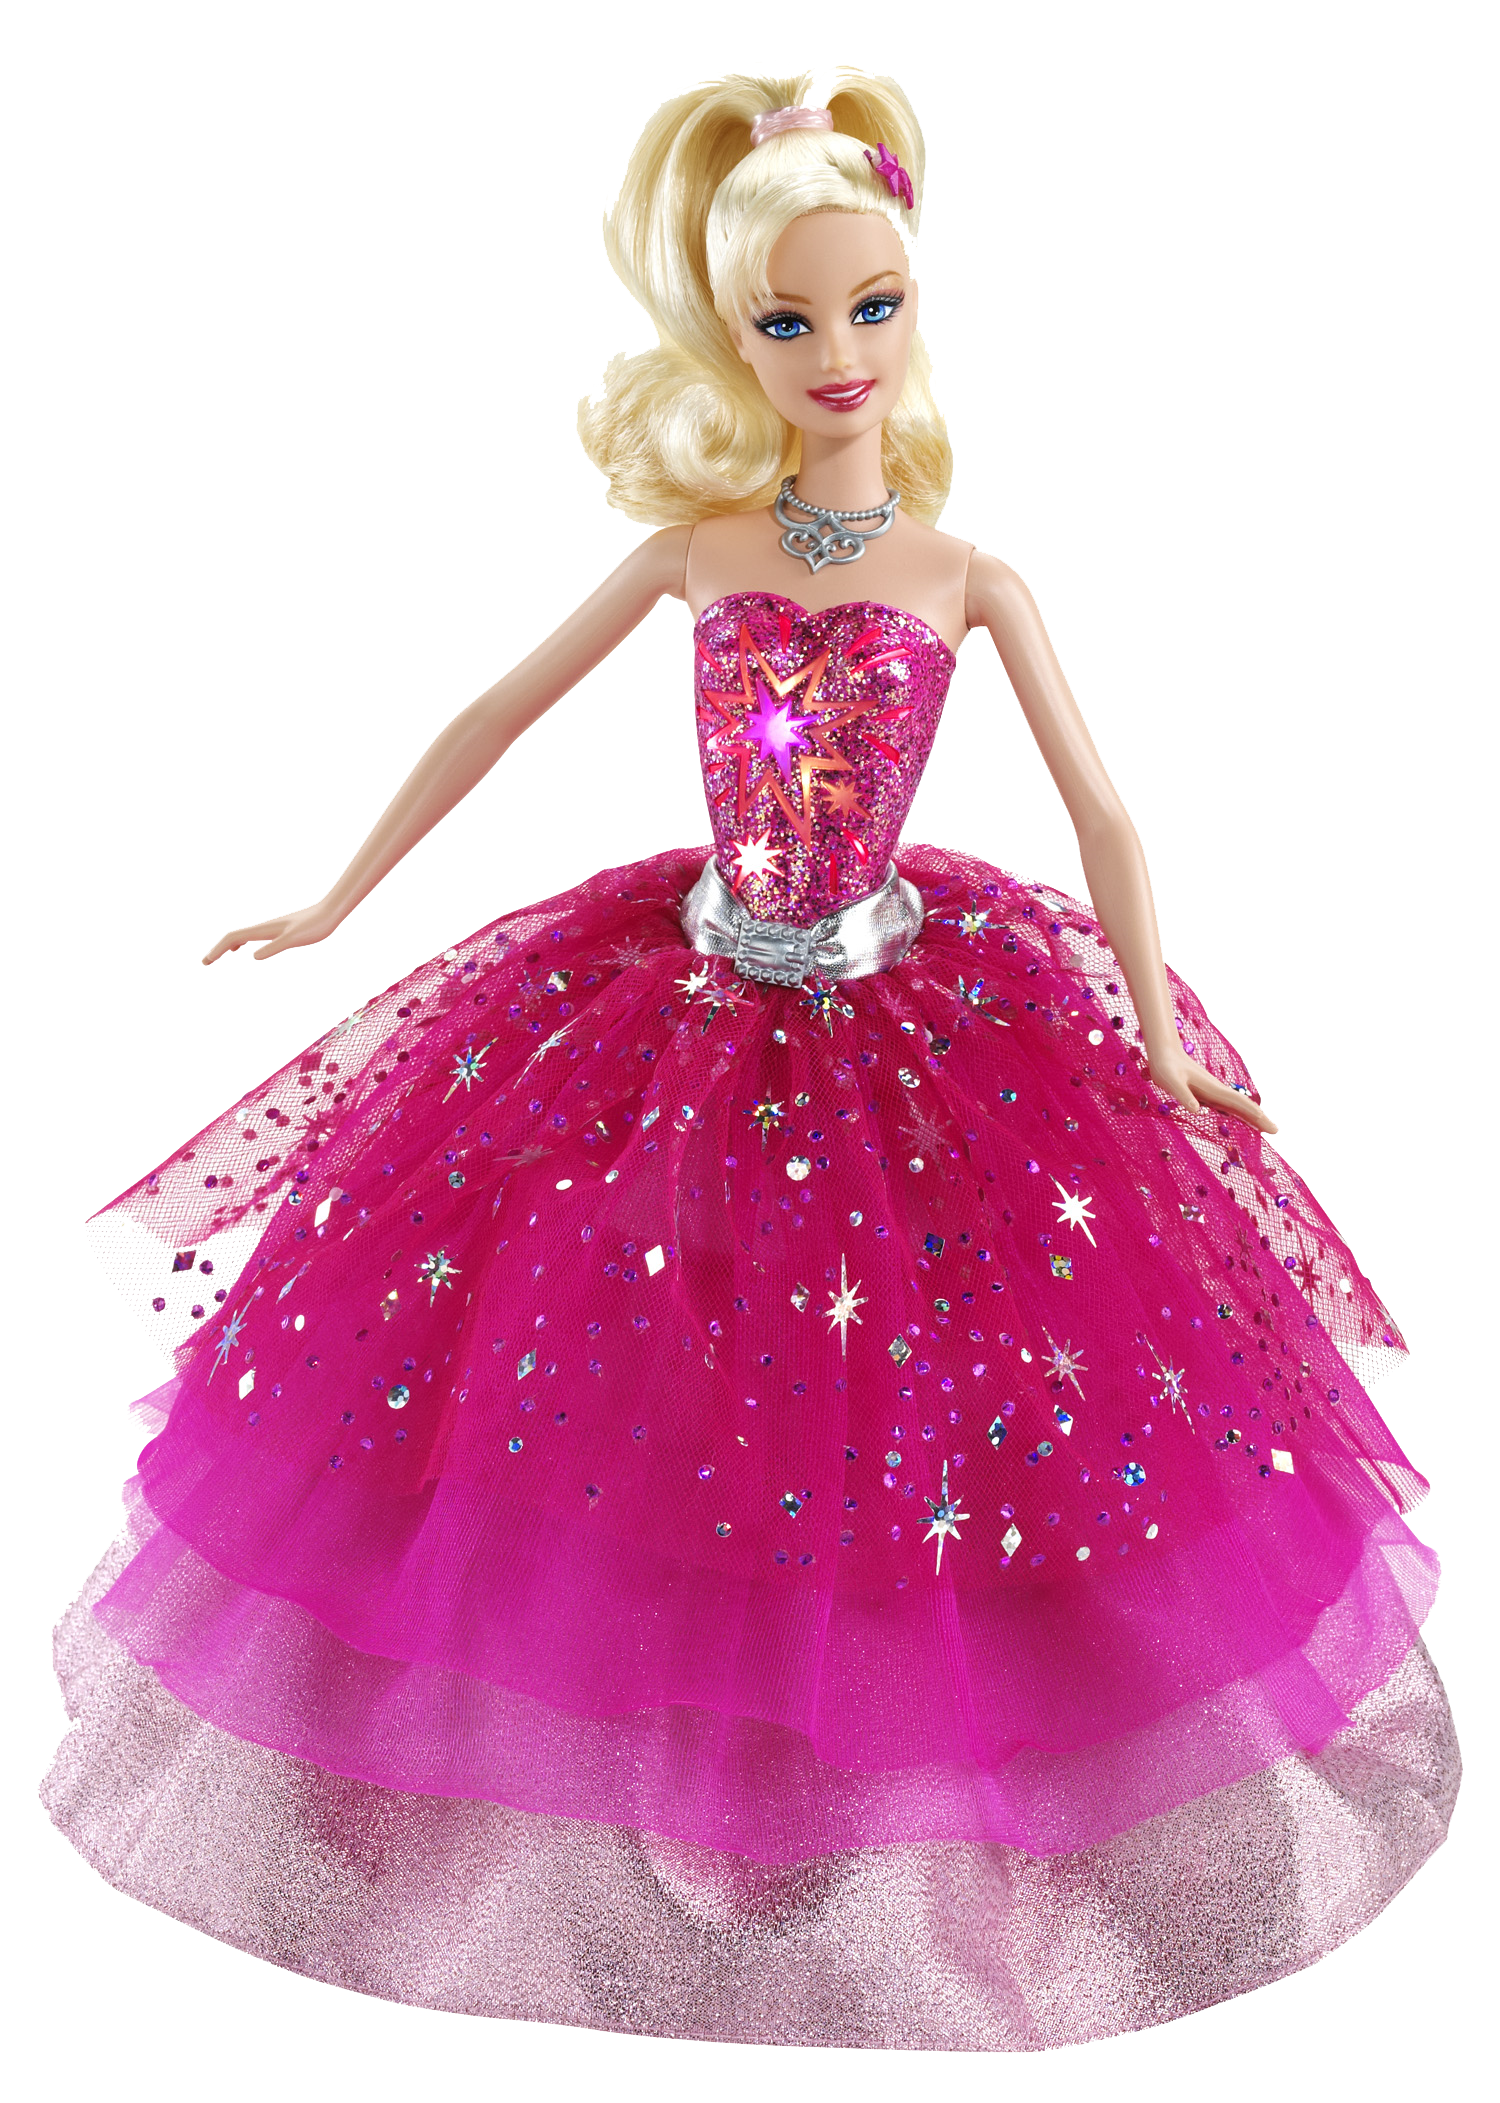 Barbie clip art. Banner free library